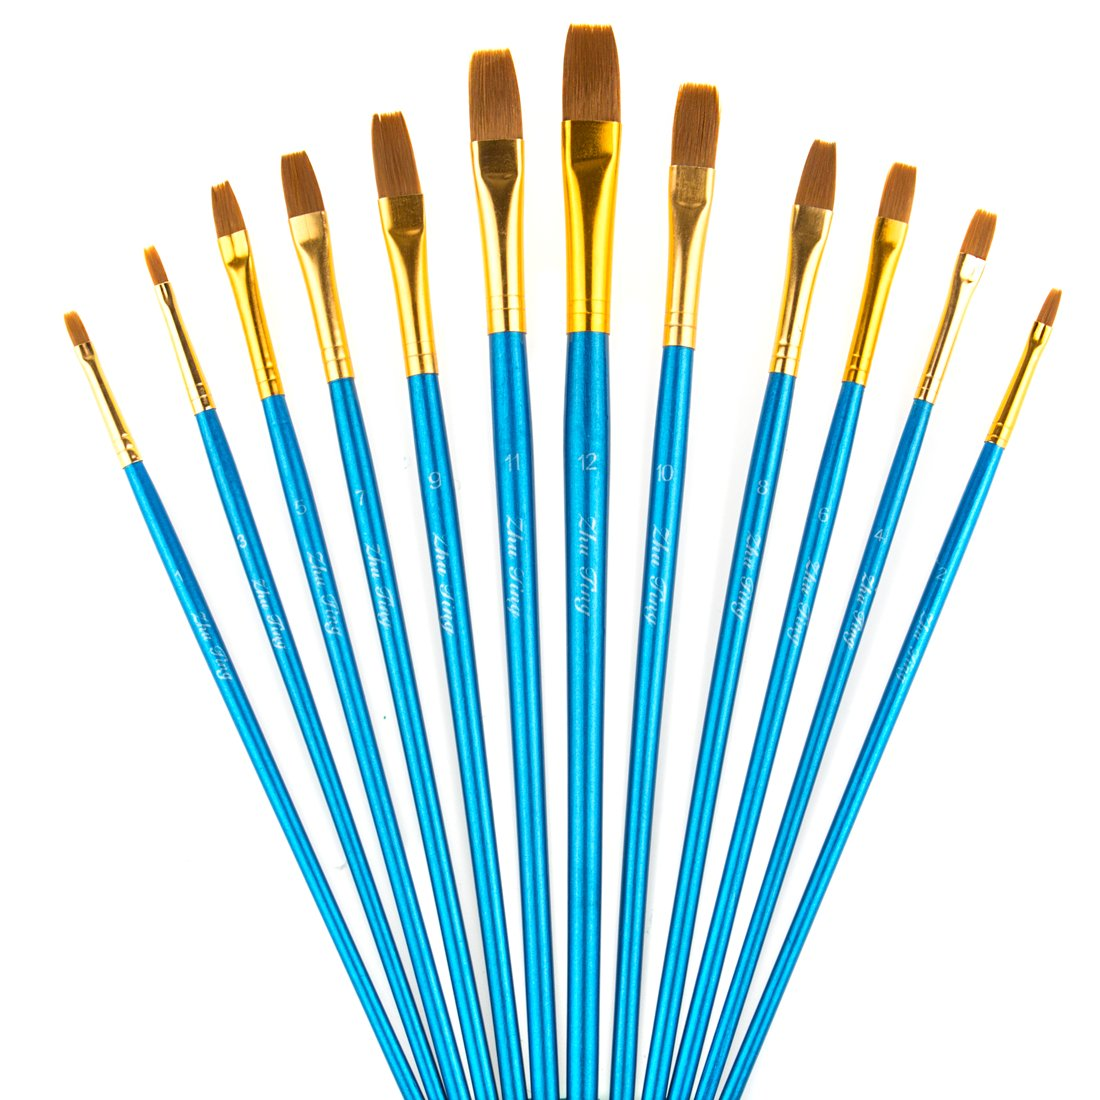 STARVAST Painting Brushes, 12pcs Professional Flat Paint Brush Set for Watercolor, Oil, Acrylic, Crafts, Rock, Face Painting and Gouache - Blue